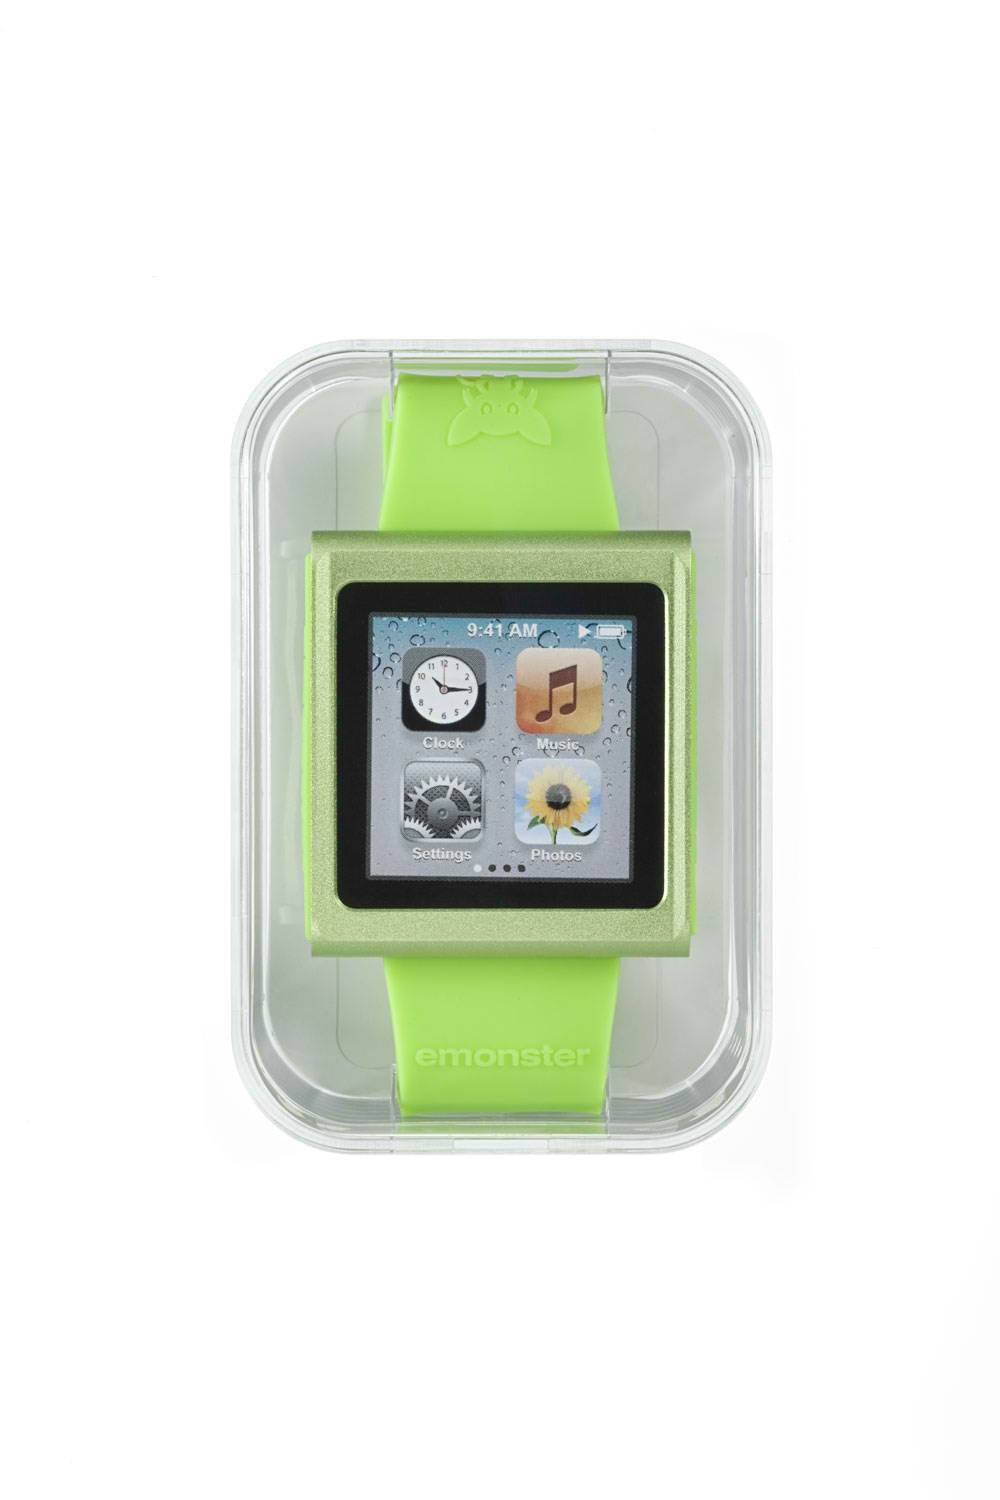 Nanox - a new watch with iPod Nano